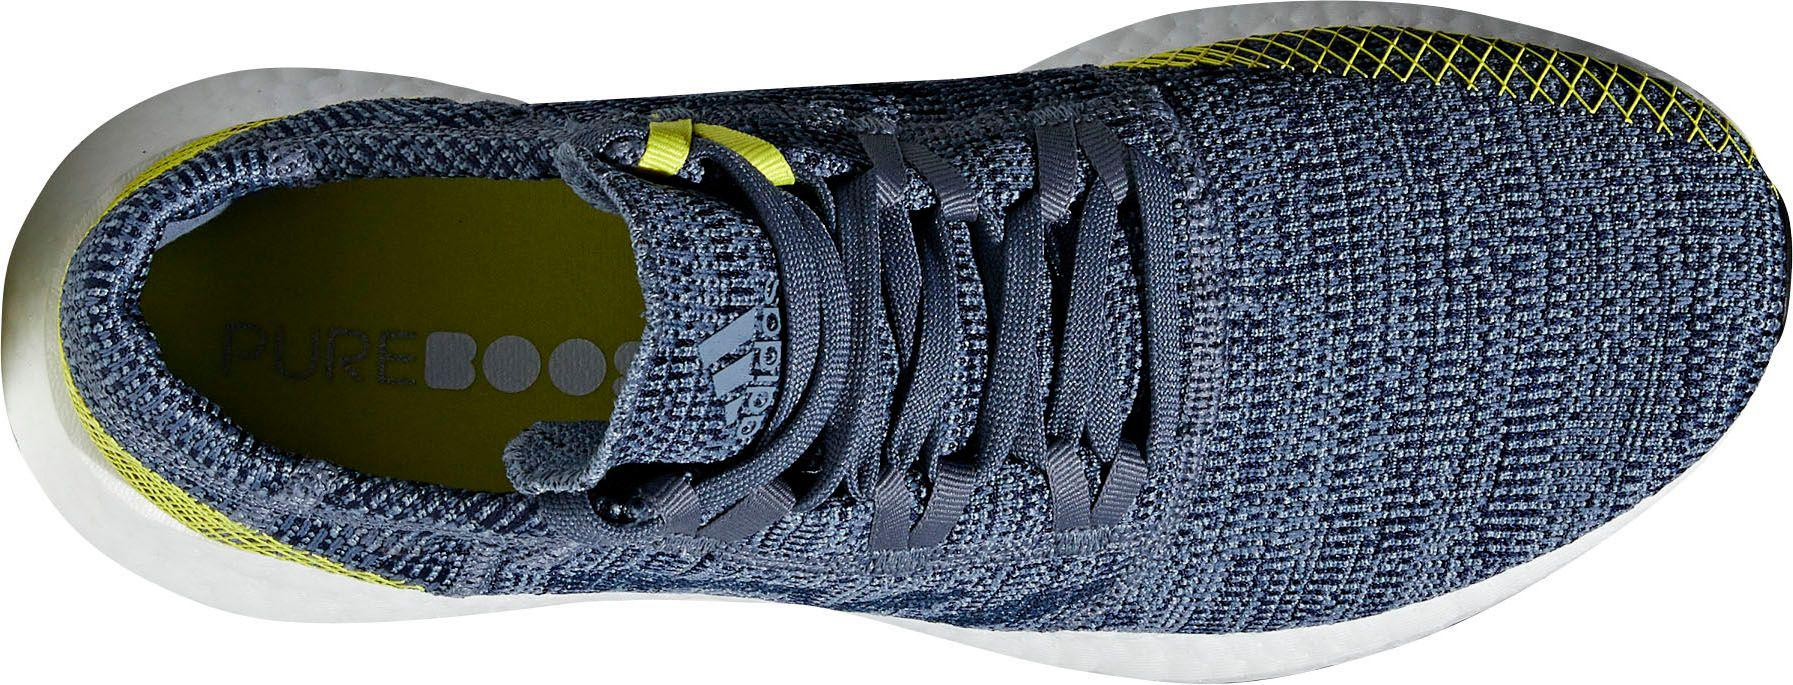 d6dbc3c77704b Lyst - adidas Pureboost Go Running Shoes in Blue for Men